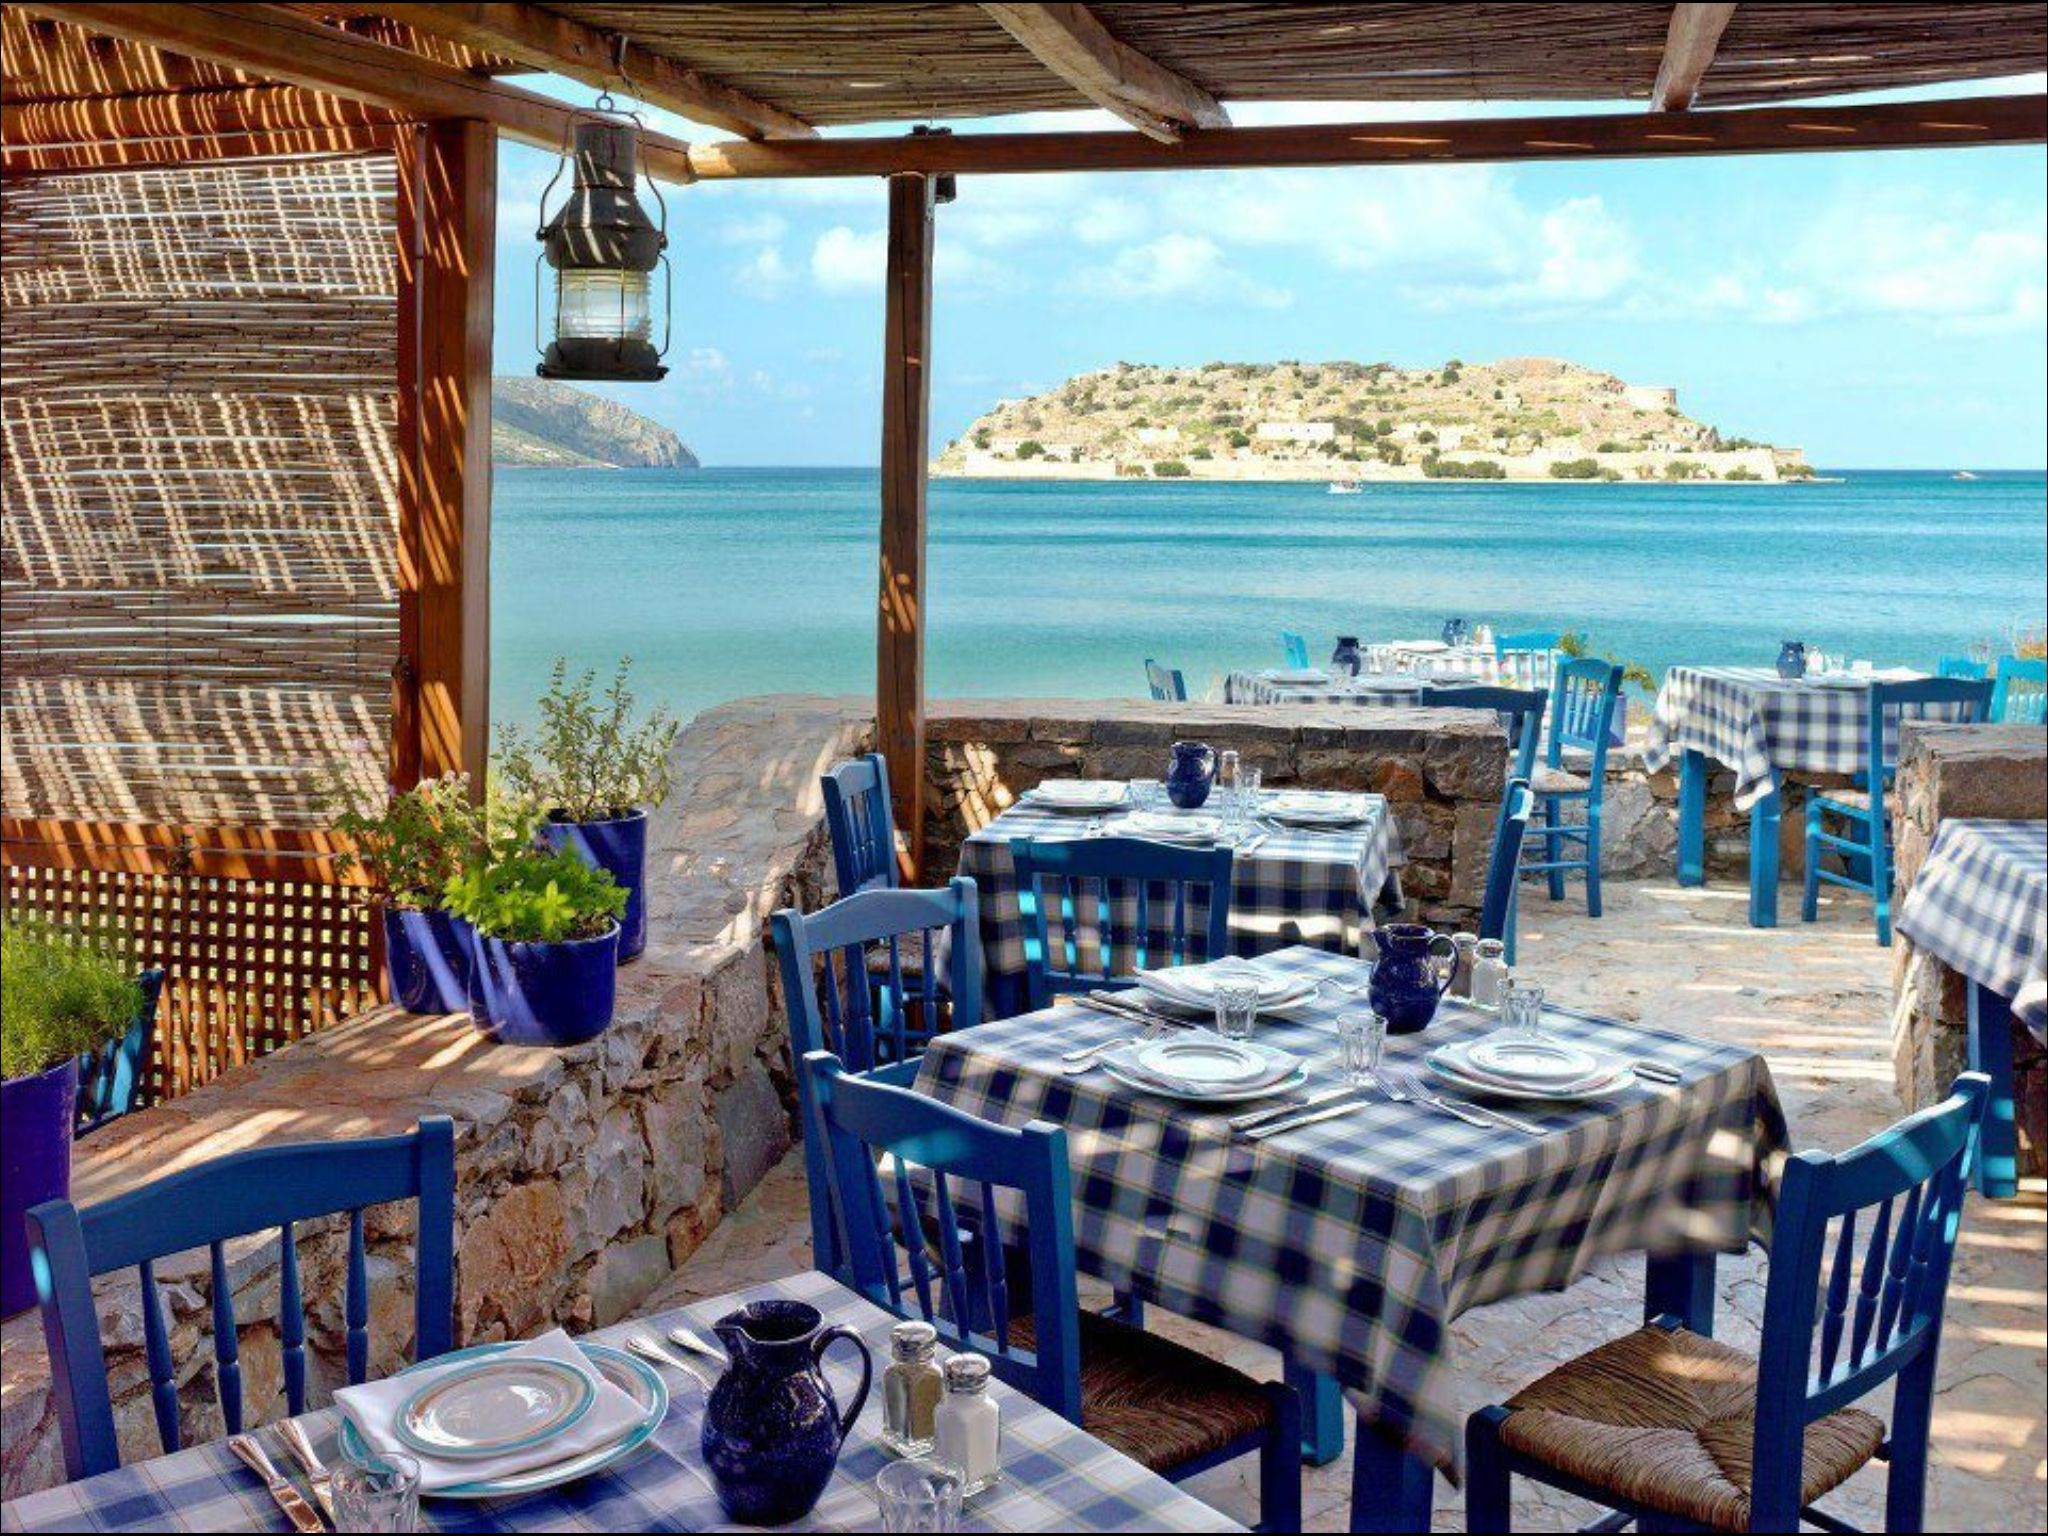 481 best greek taverns, bars, cafes, restaurants images on